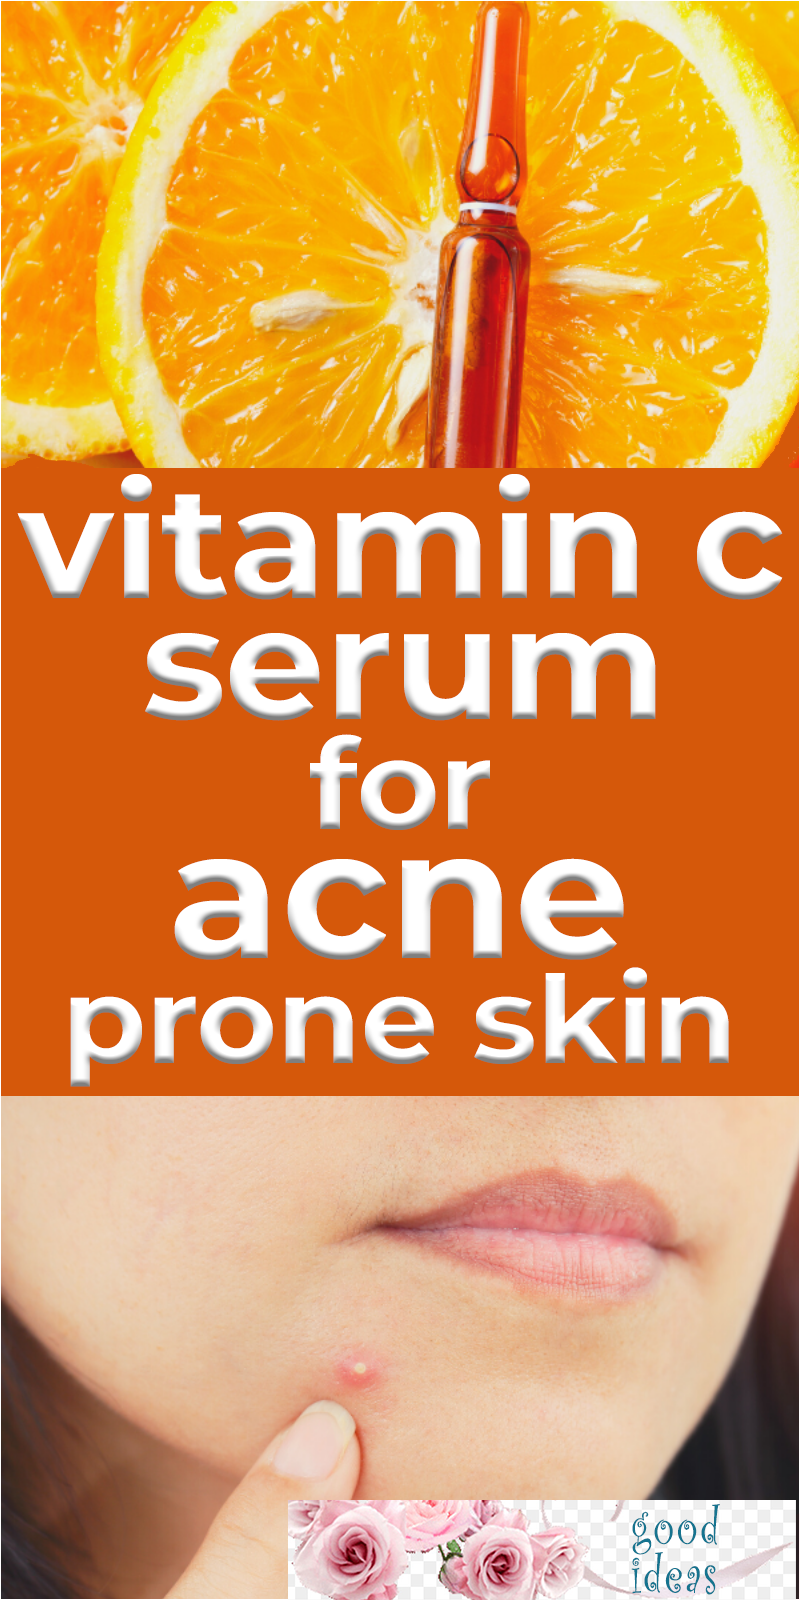 How To Use Vitamin C Serum For Anti Aging Brighter And Blemish Free Skin Don T Miss This Mira In 2020 Vitamin C Serum Anti Aging Skin Care Remedies Organic Skin Care